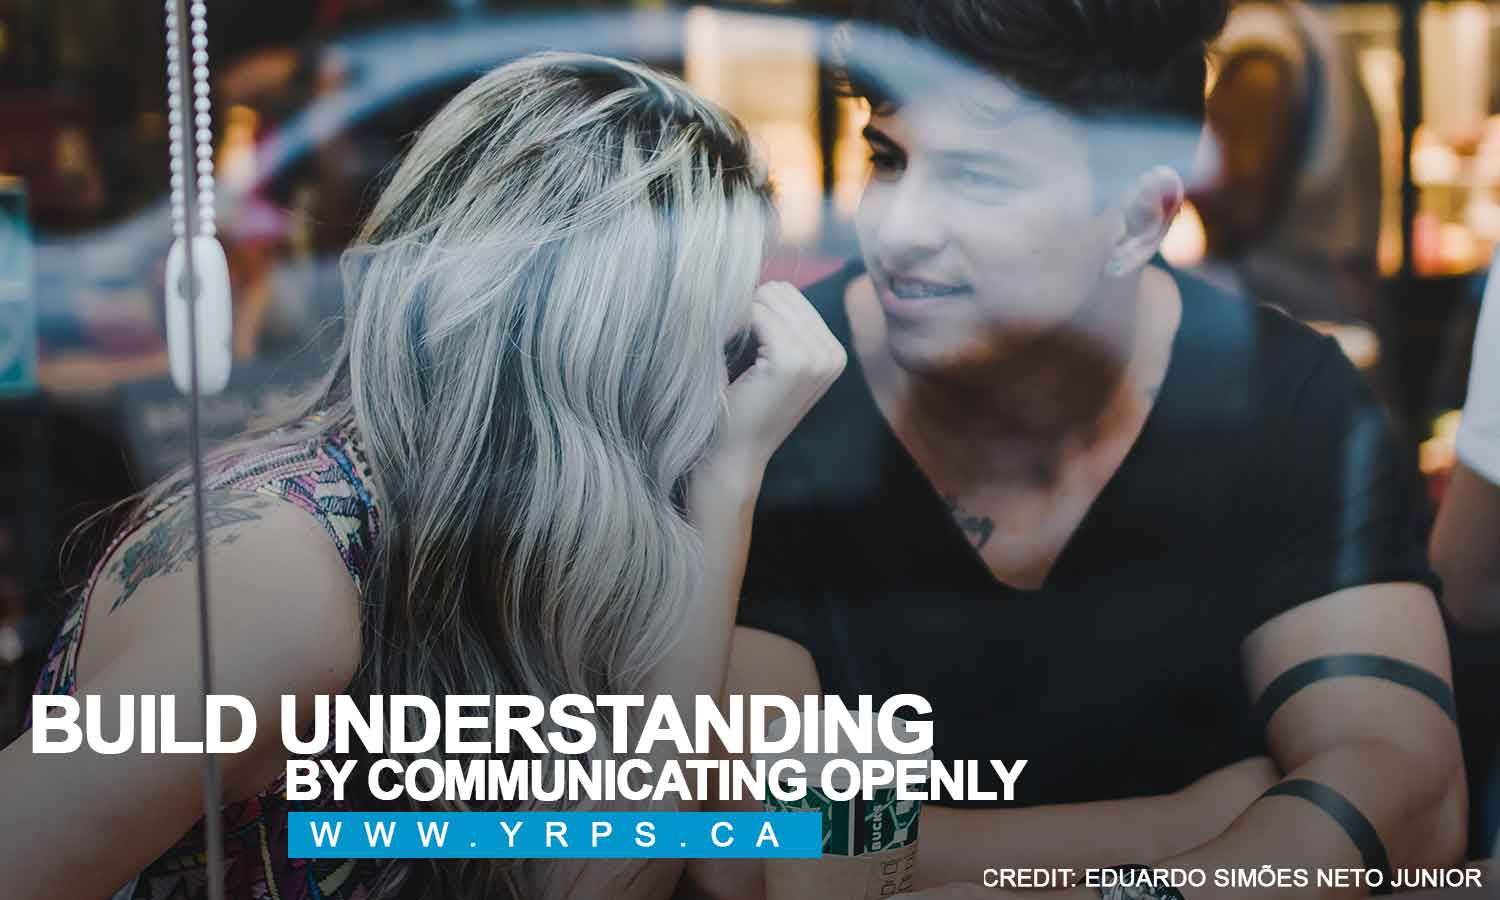 Build understanding by communicating openly